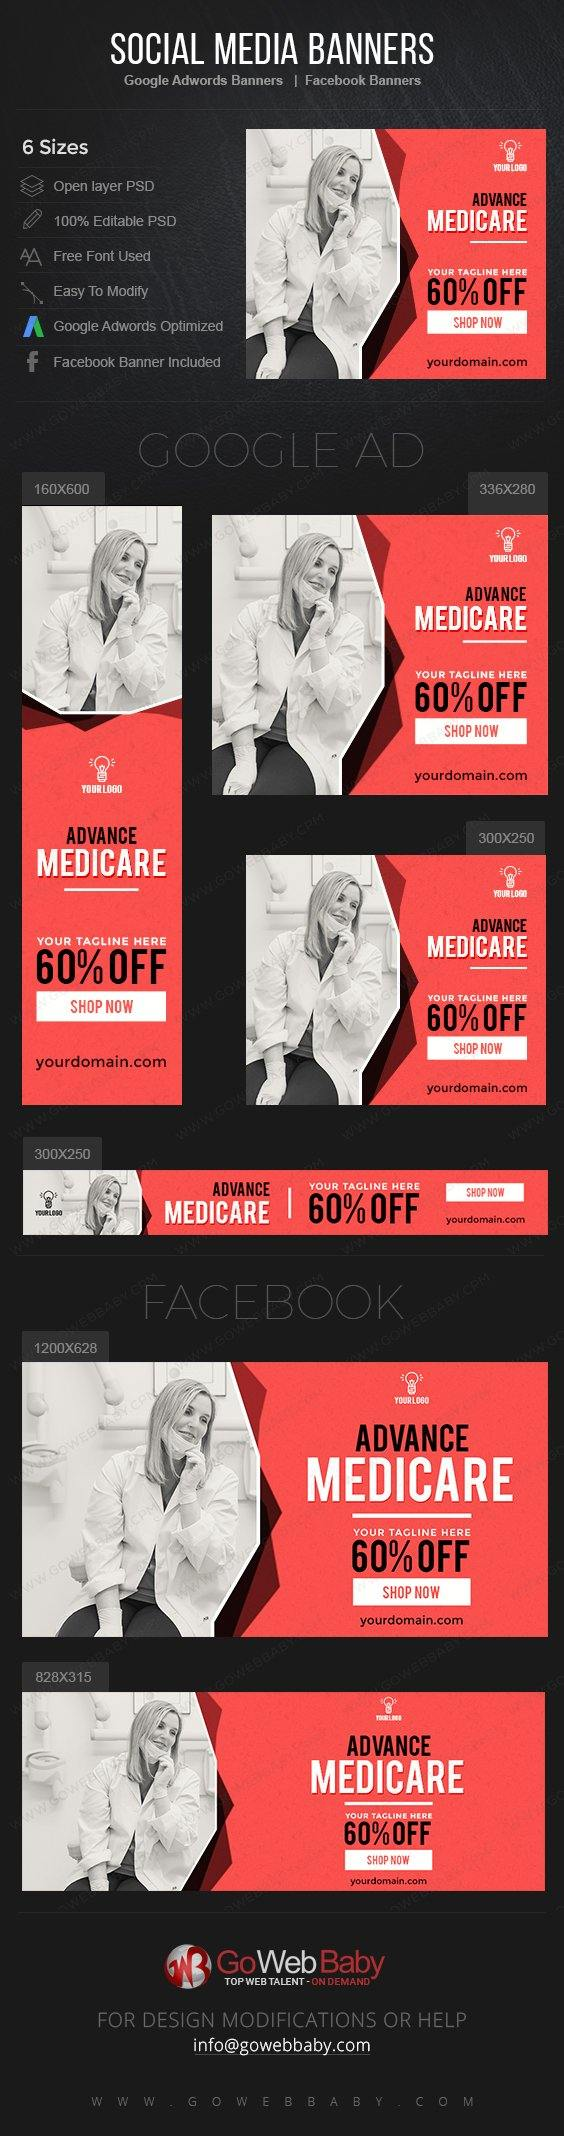 Google Adwords Display Banner with Facebook banners - Medicare For Website Marketing - GoWebBaby.Com